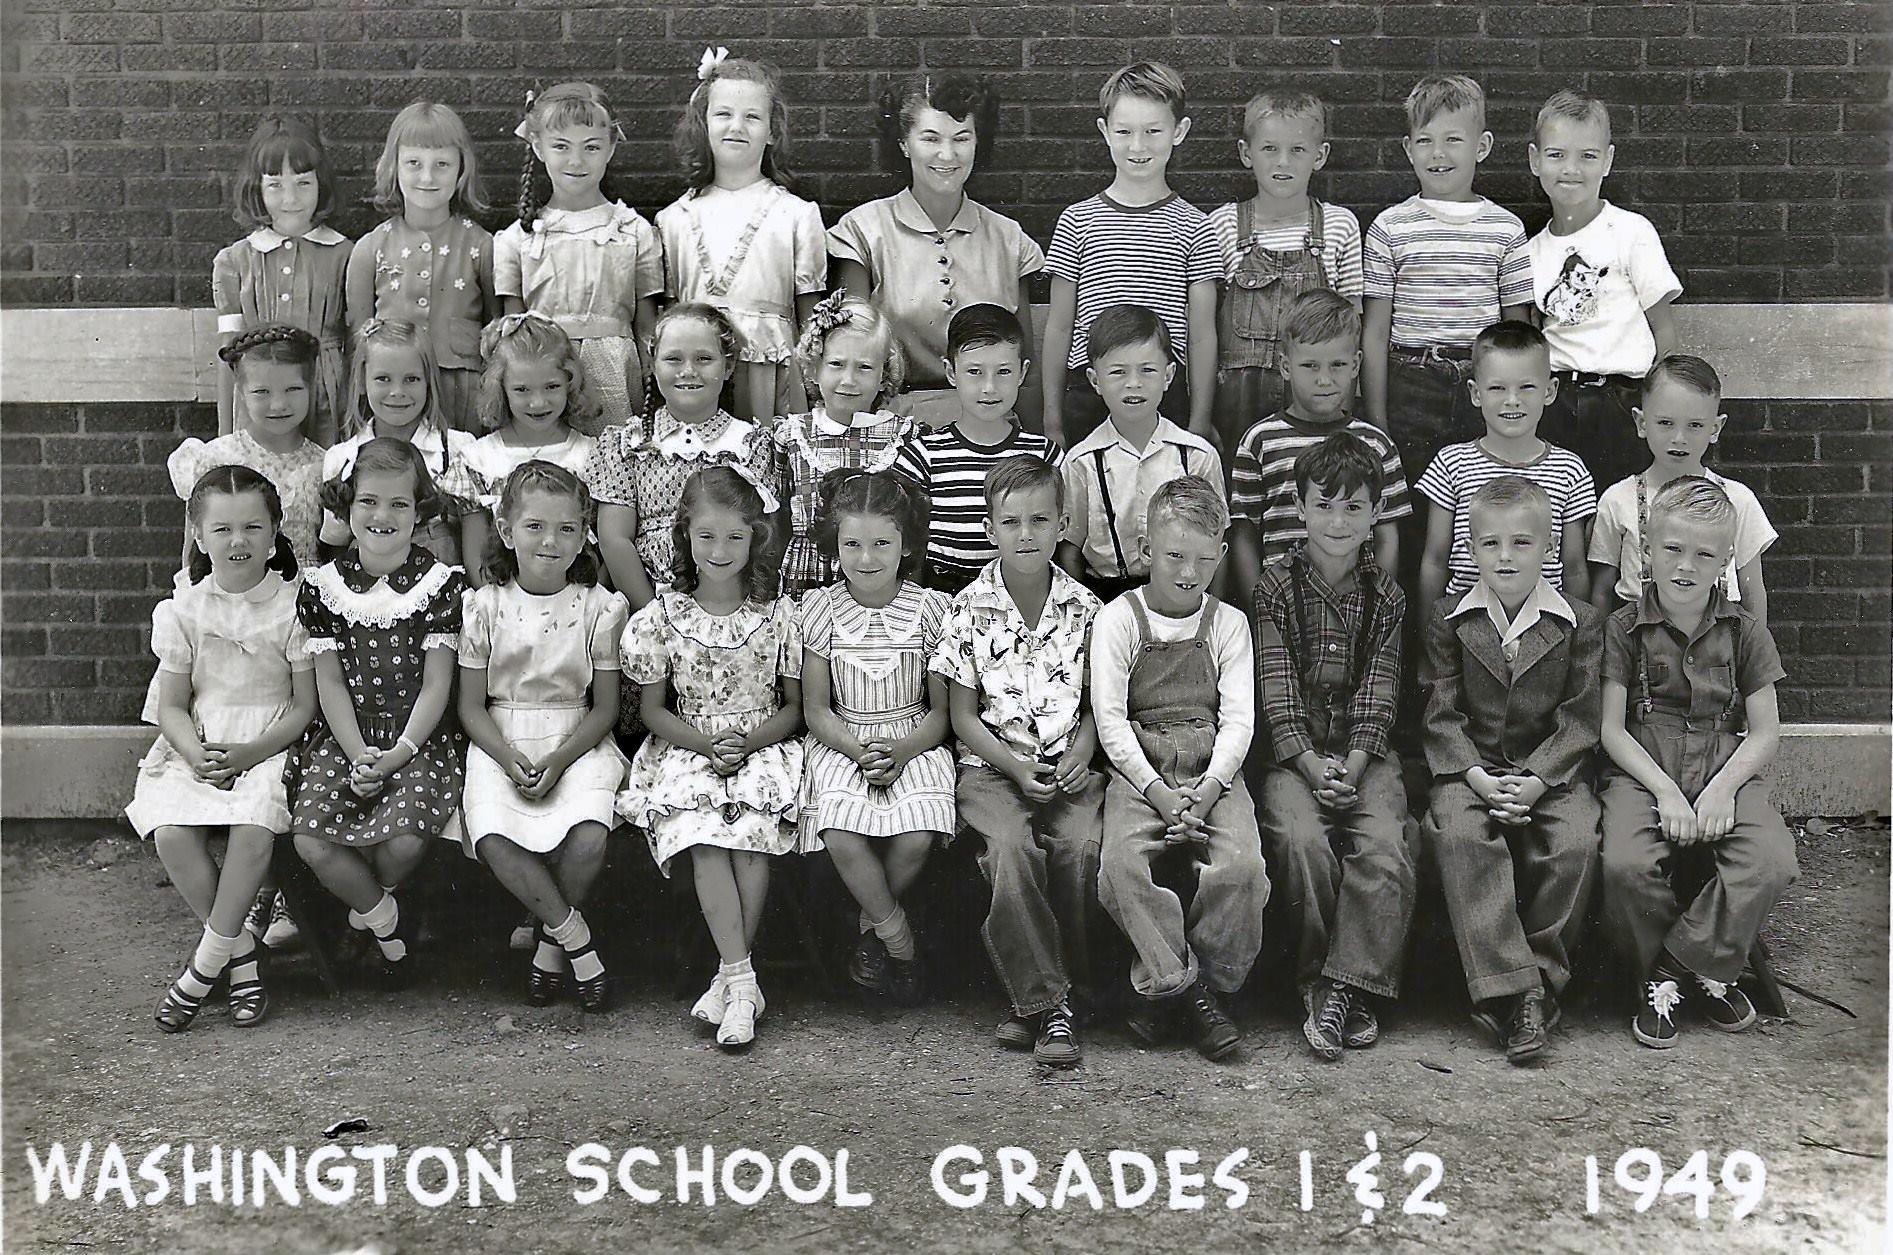 #105 P4 WASHINGTON GRADE 1&2 1949 PARSONS, KS